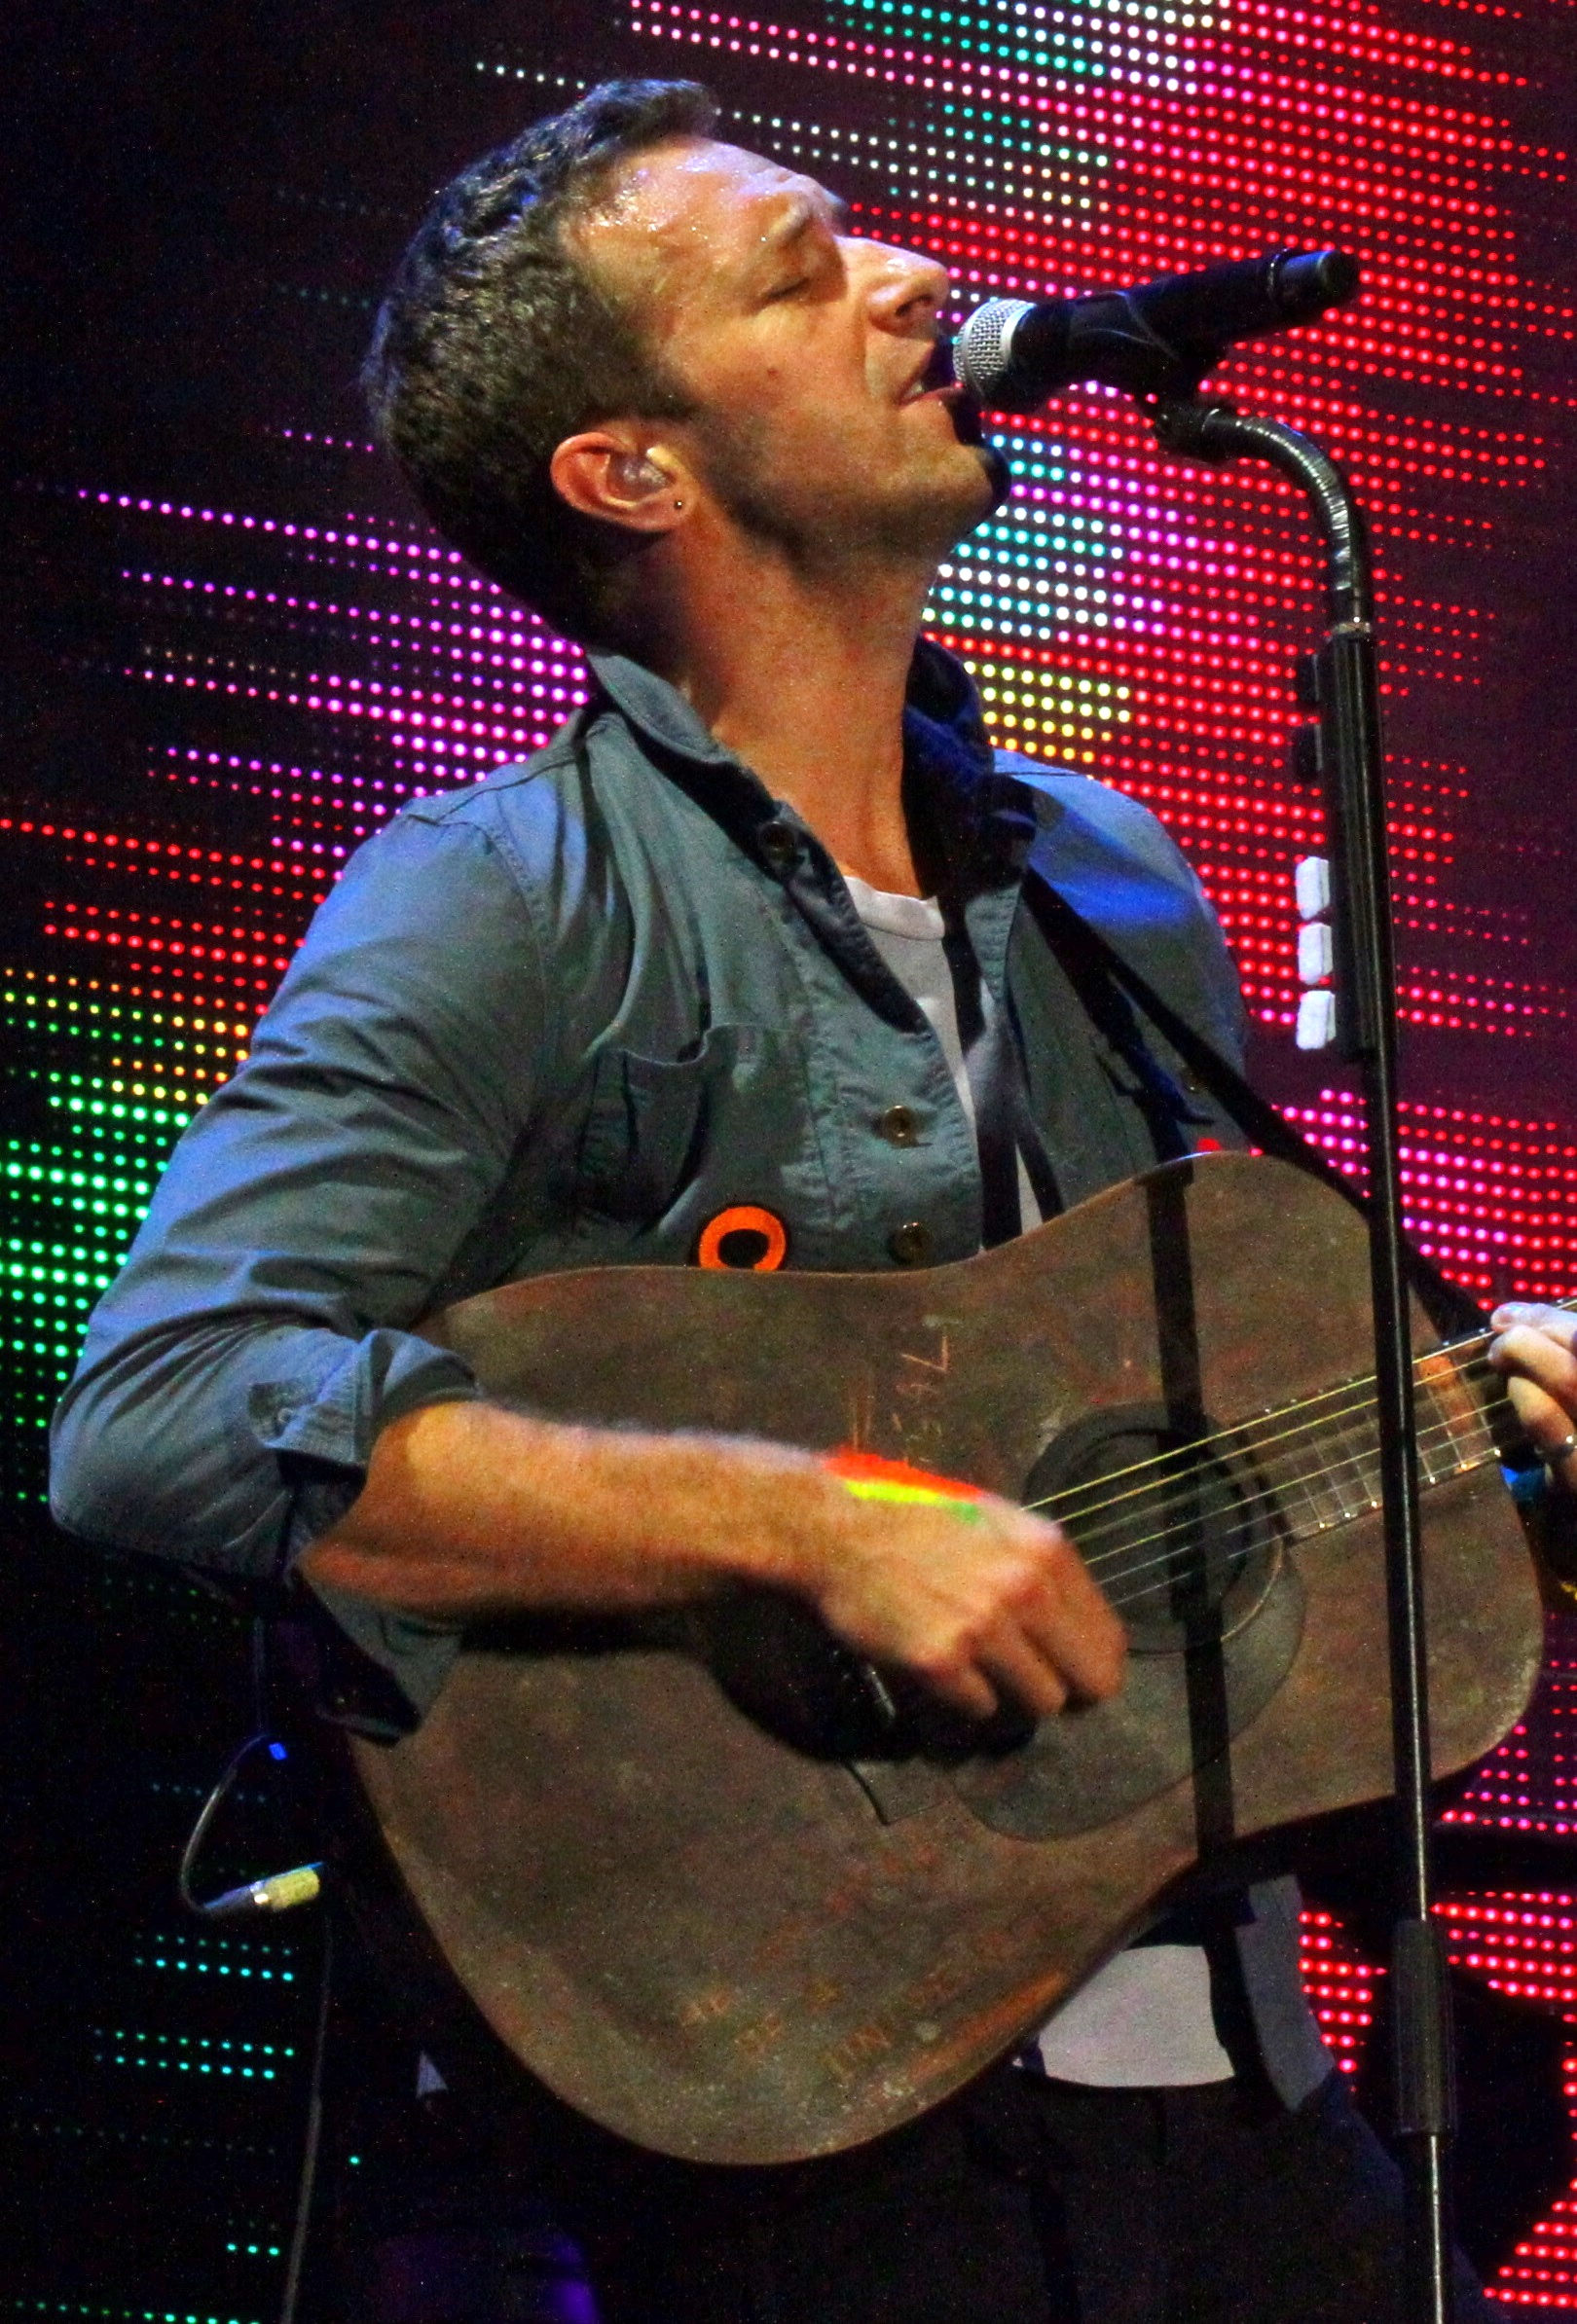 Photo of Chris Martin: Musician, co-founder of Coldplay